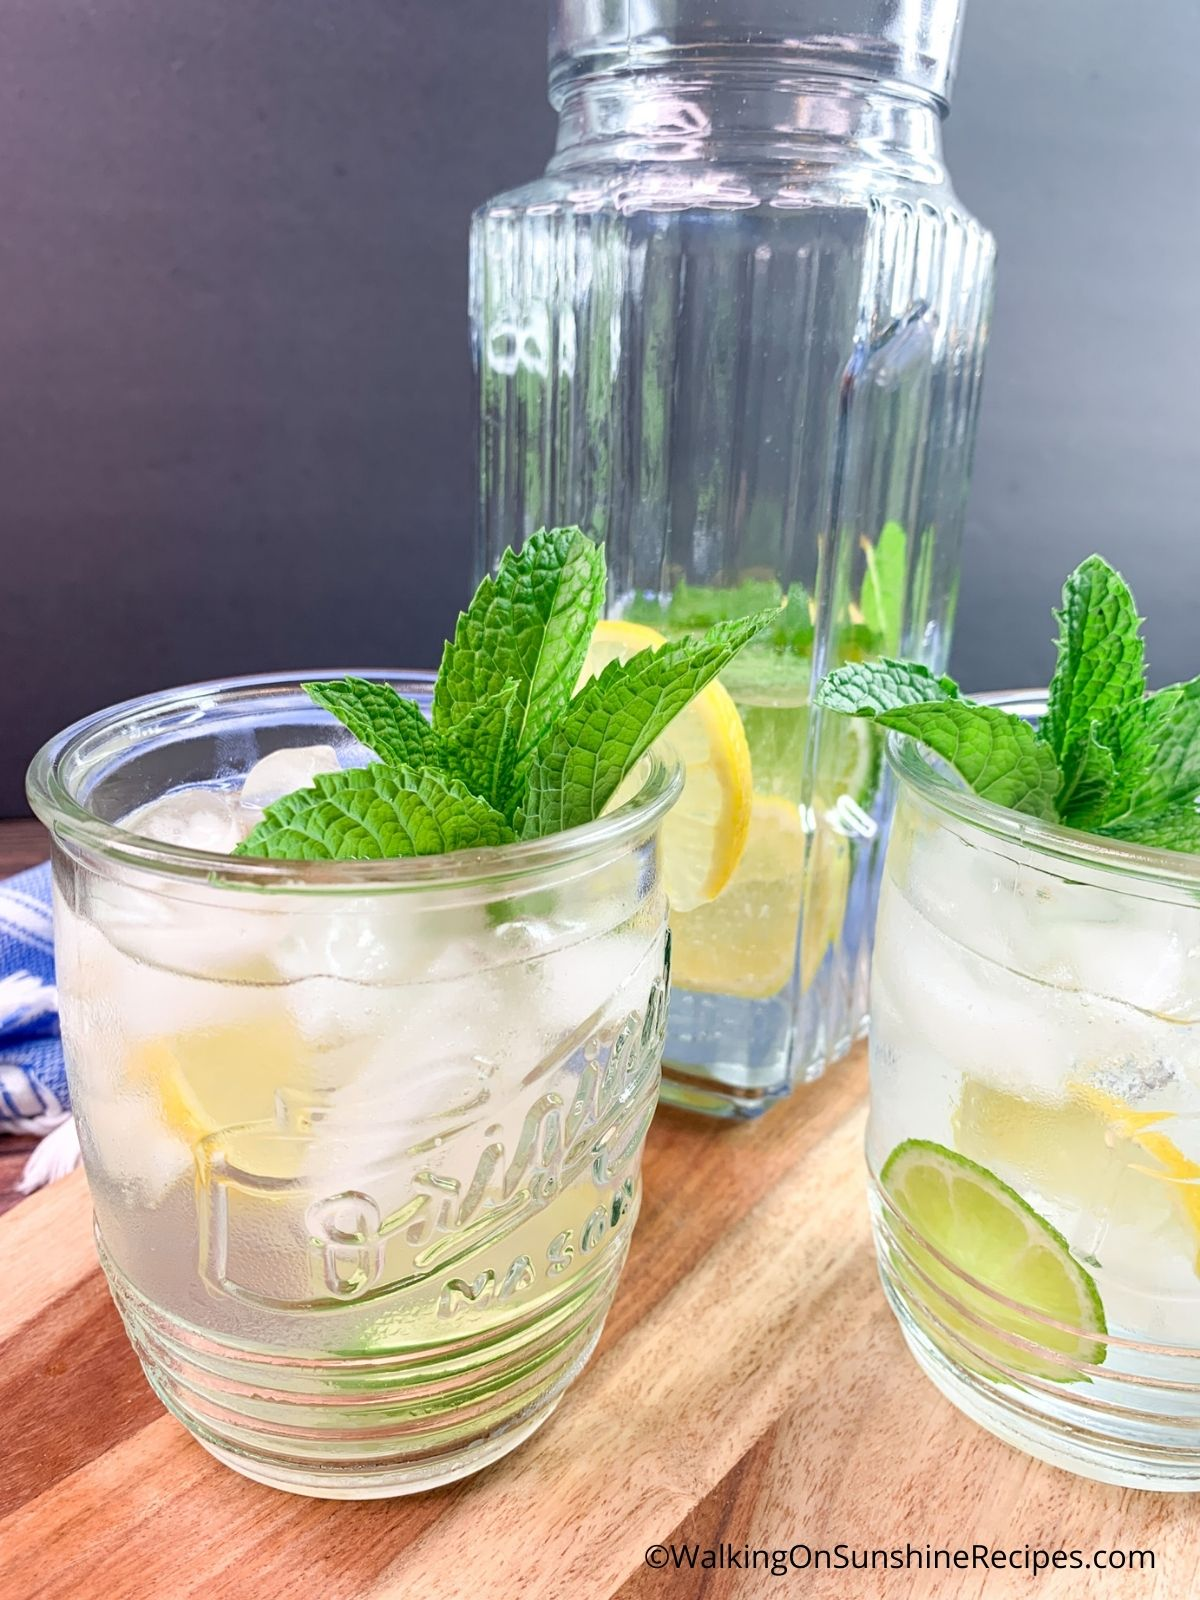 Lemon Lime Sparkling Water in glass and in pitcher.